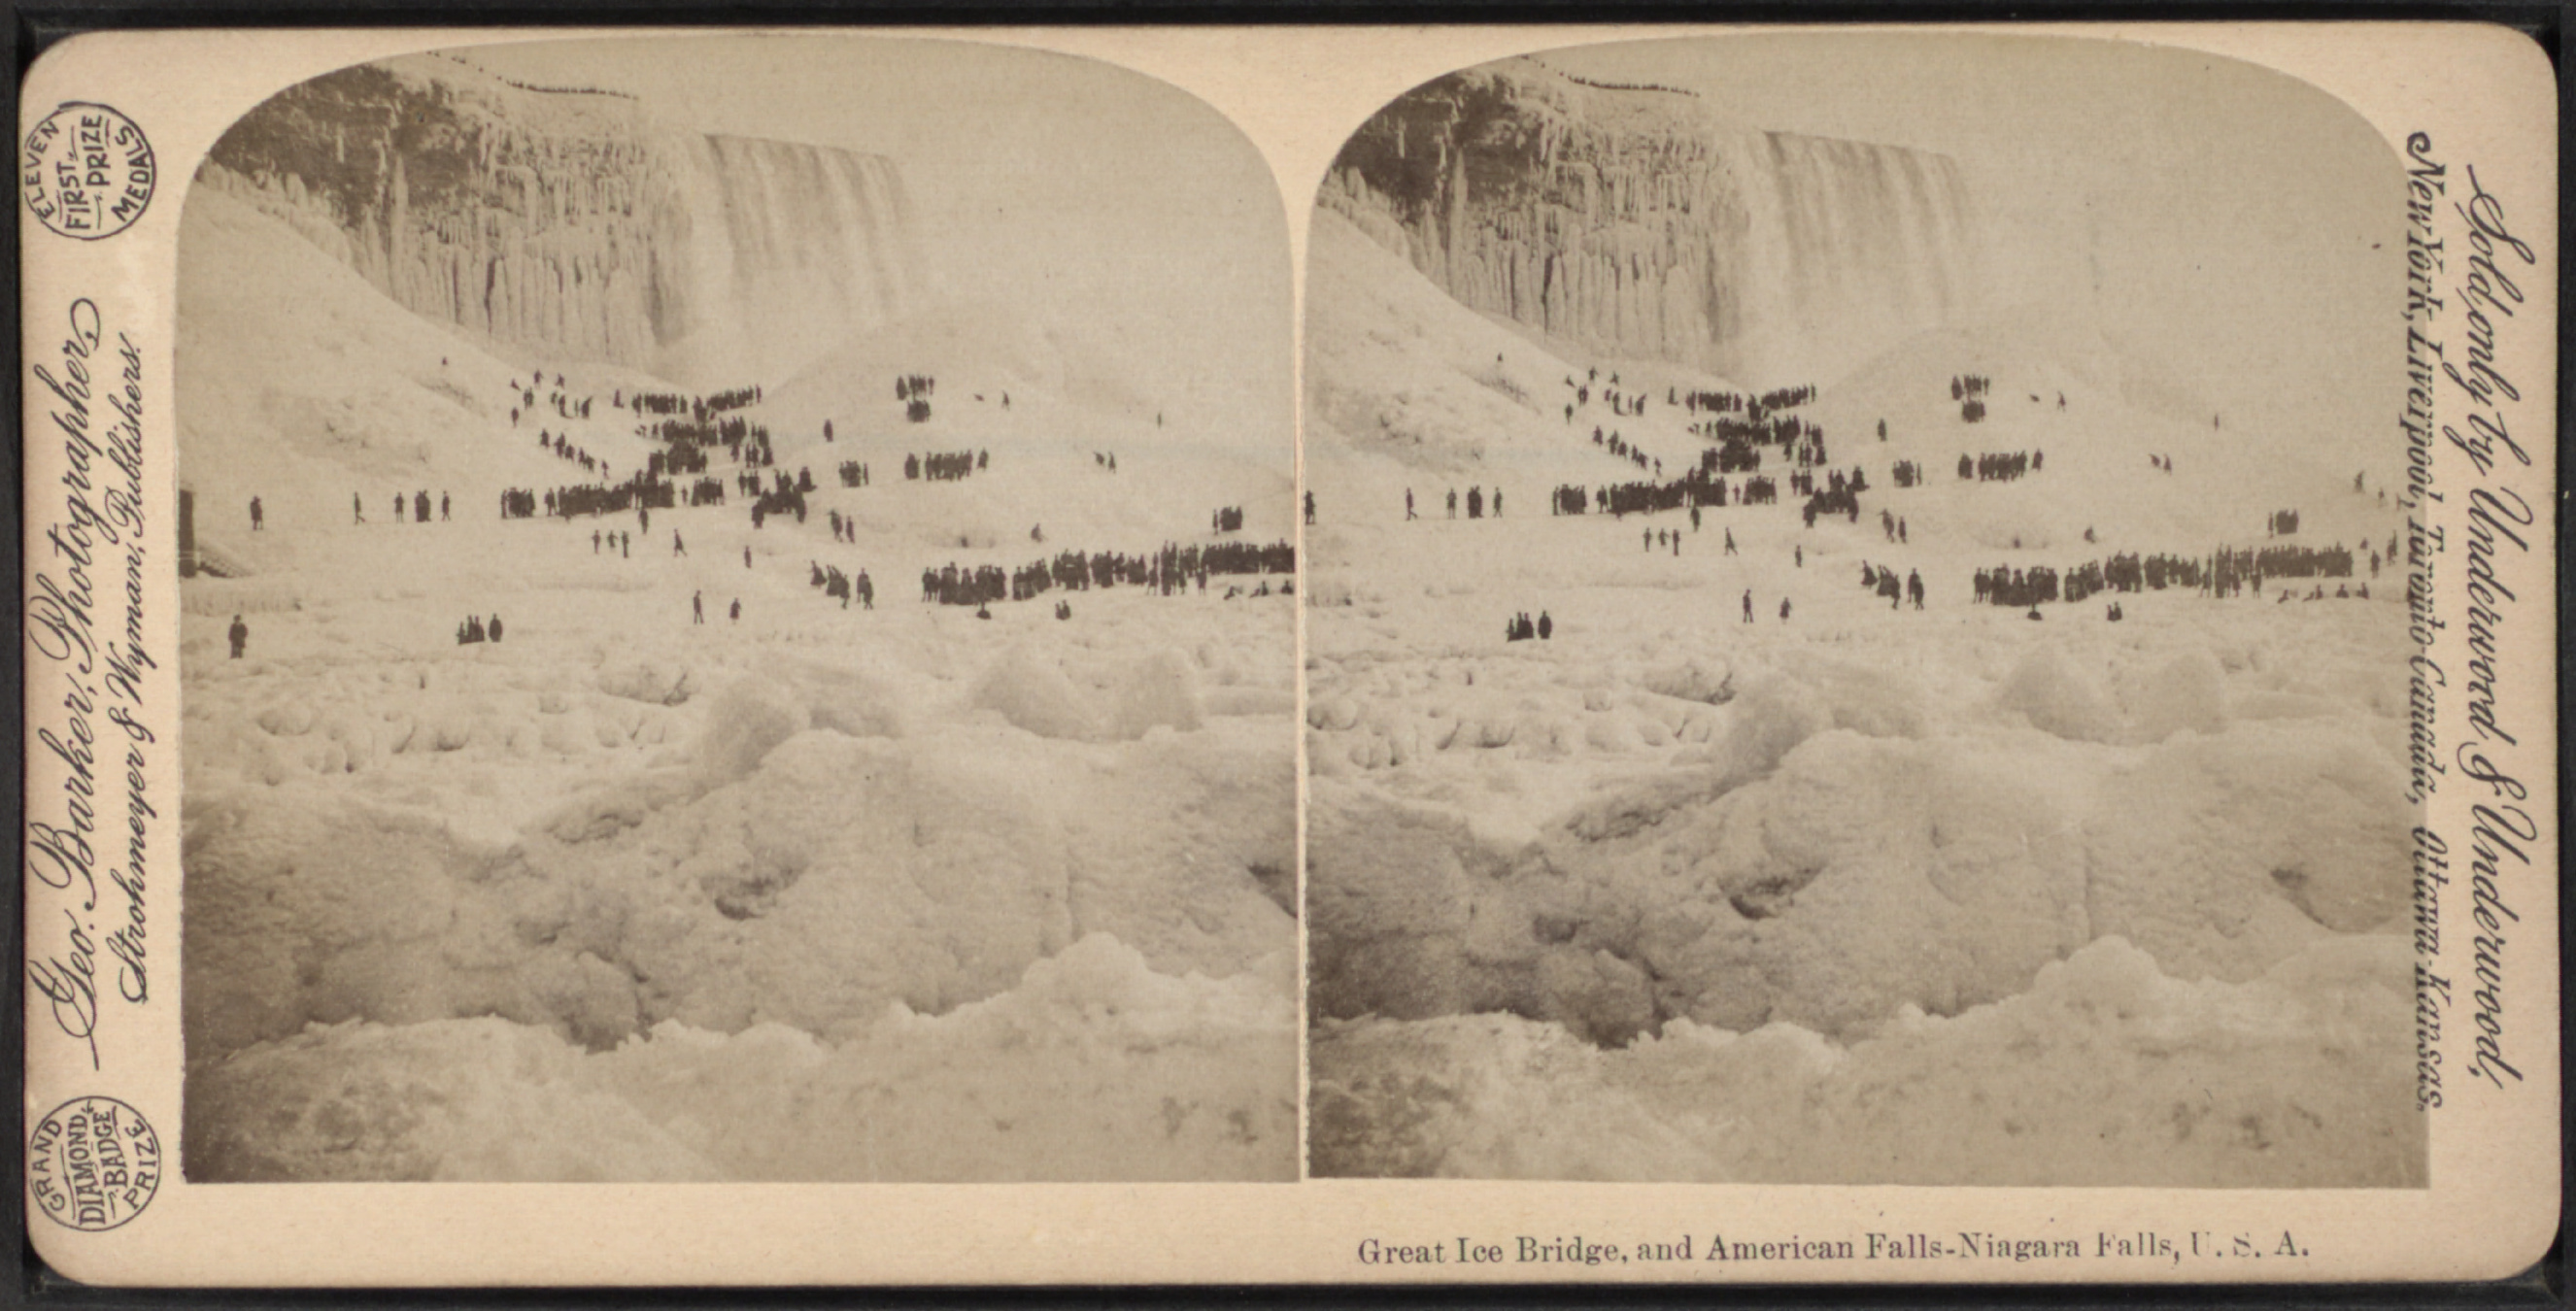 Great_Ice_Bridge,_and_American_Falls,_Niagara_Falls,_U._S._A.,_by_Barker,_George,_1844-1894